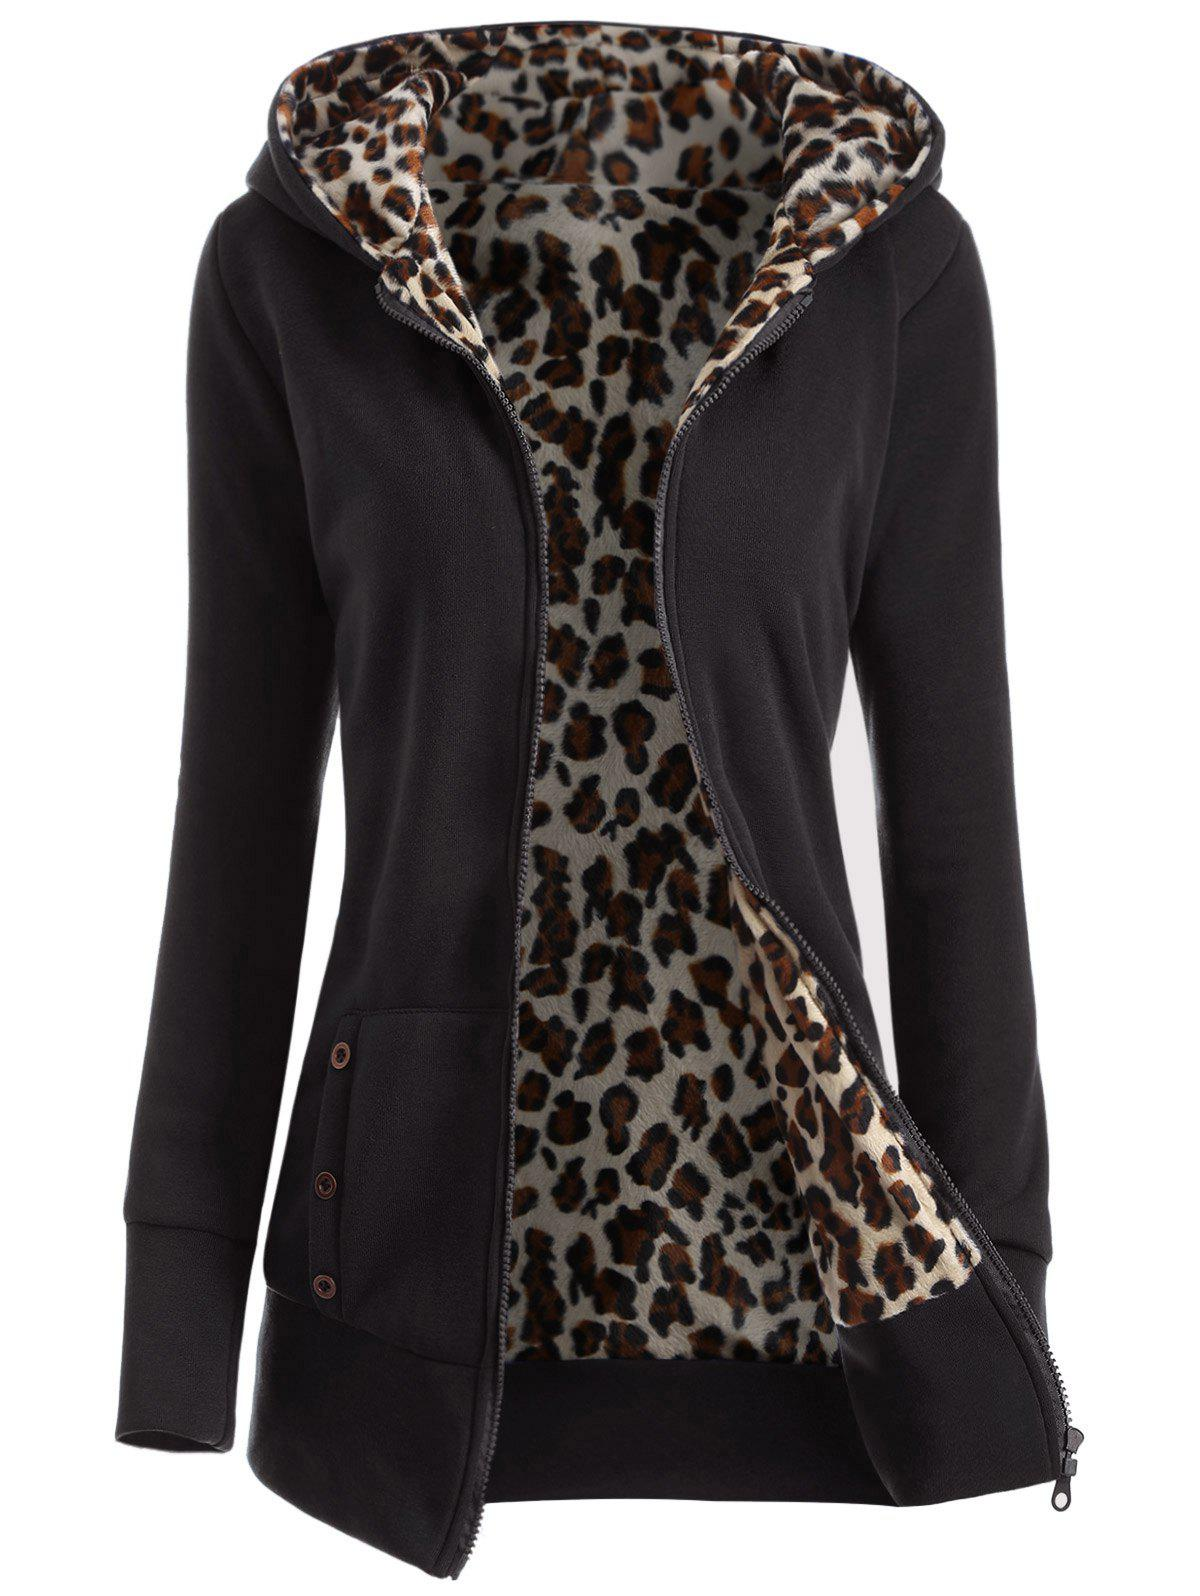 Thick Leopard Printed Inside HoodieWOMEN<br><br>Size: 3XL; Color: BLACK; Material: Polyester; Shirt Length: Long; Sleeve Length: Full; Style: Casual; Pattern Style: Print; Season: Winter; Weight: 0.471kg; Package Contents: 1 x Hoodie;